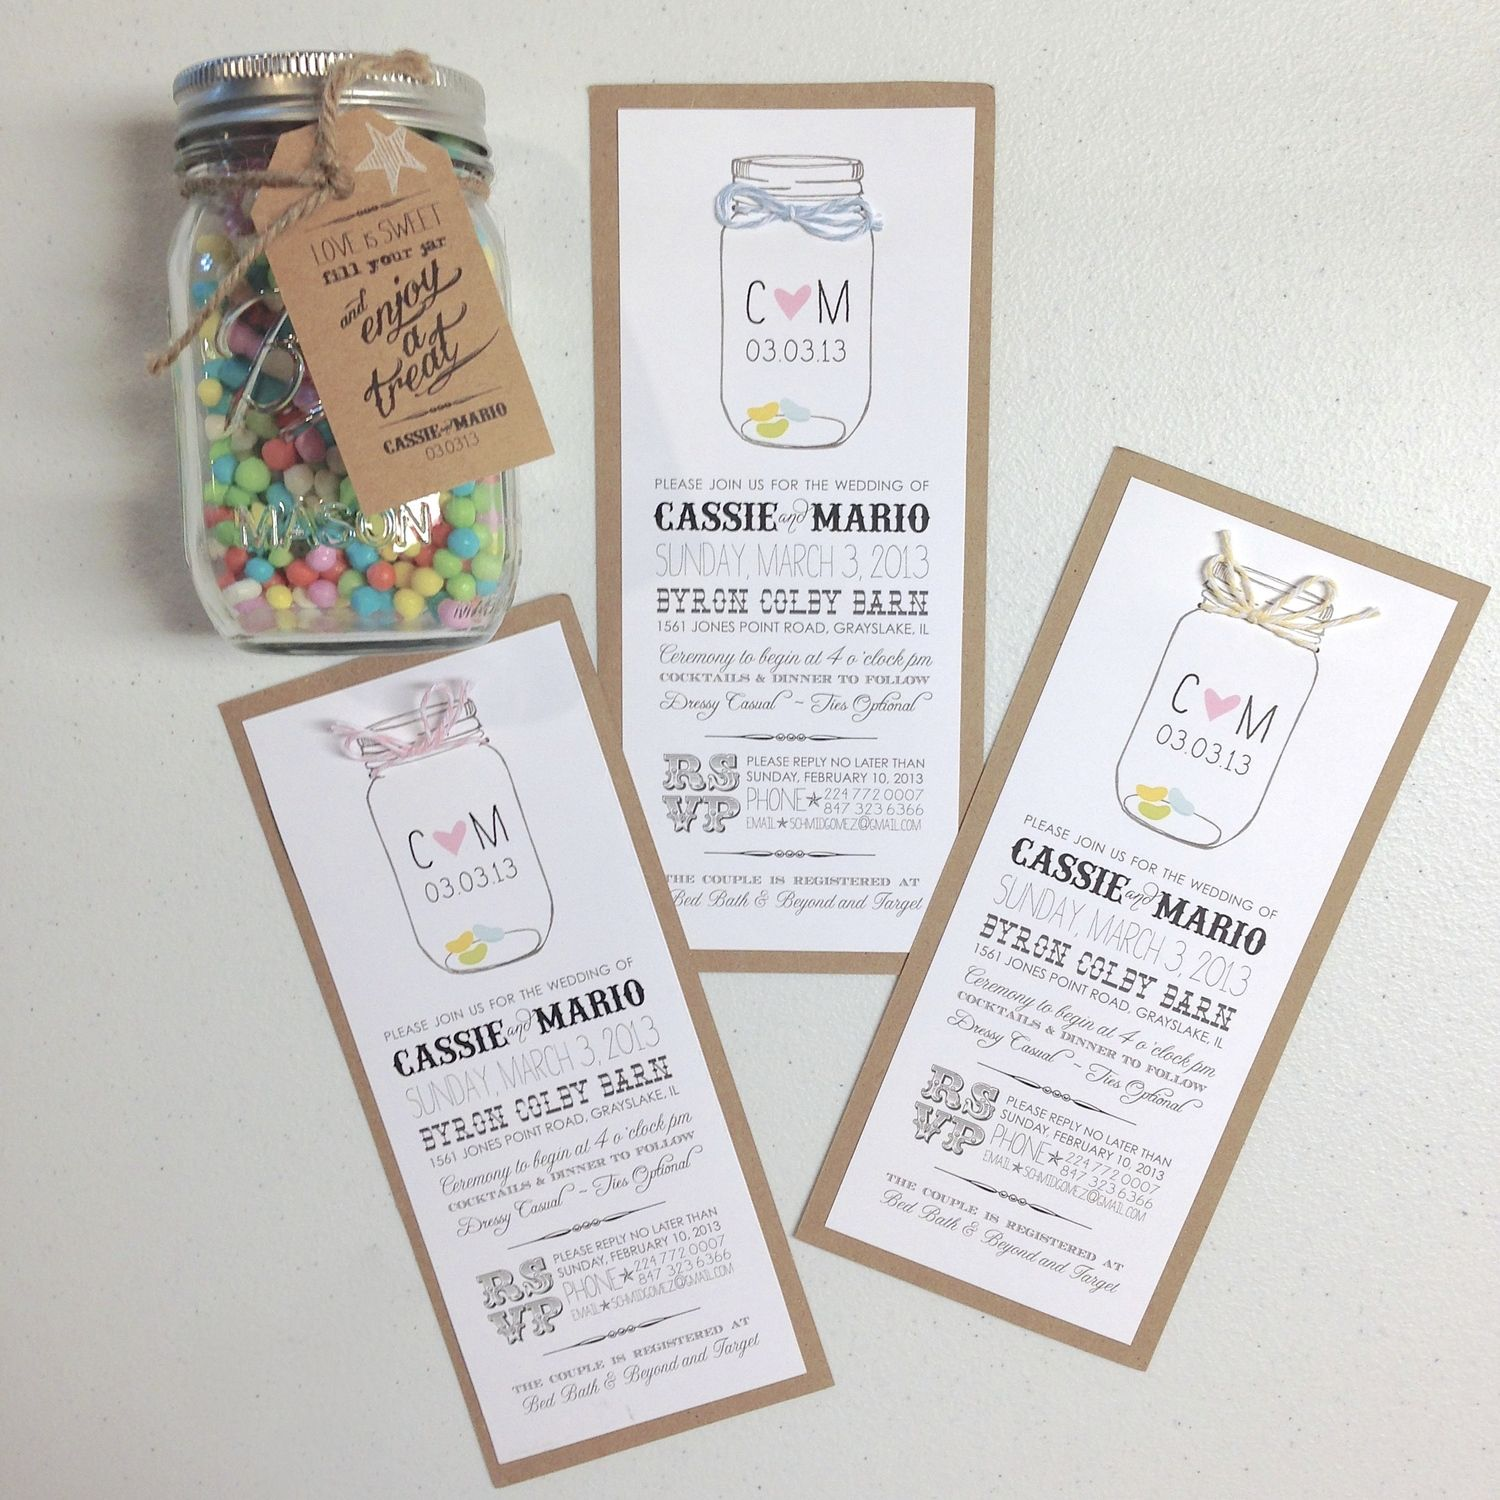 Candy themed wedding invitations   Terlie Products   Pinterest ...